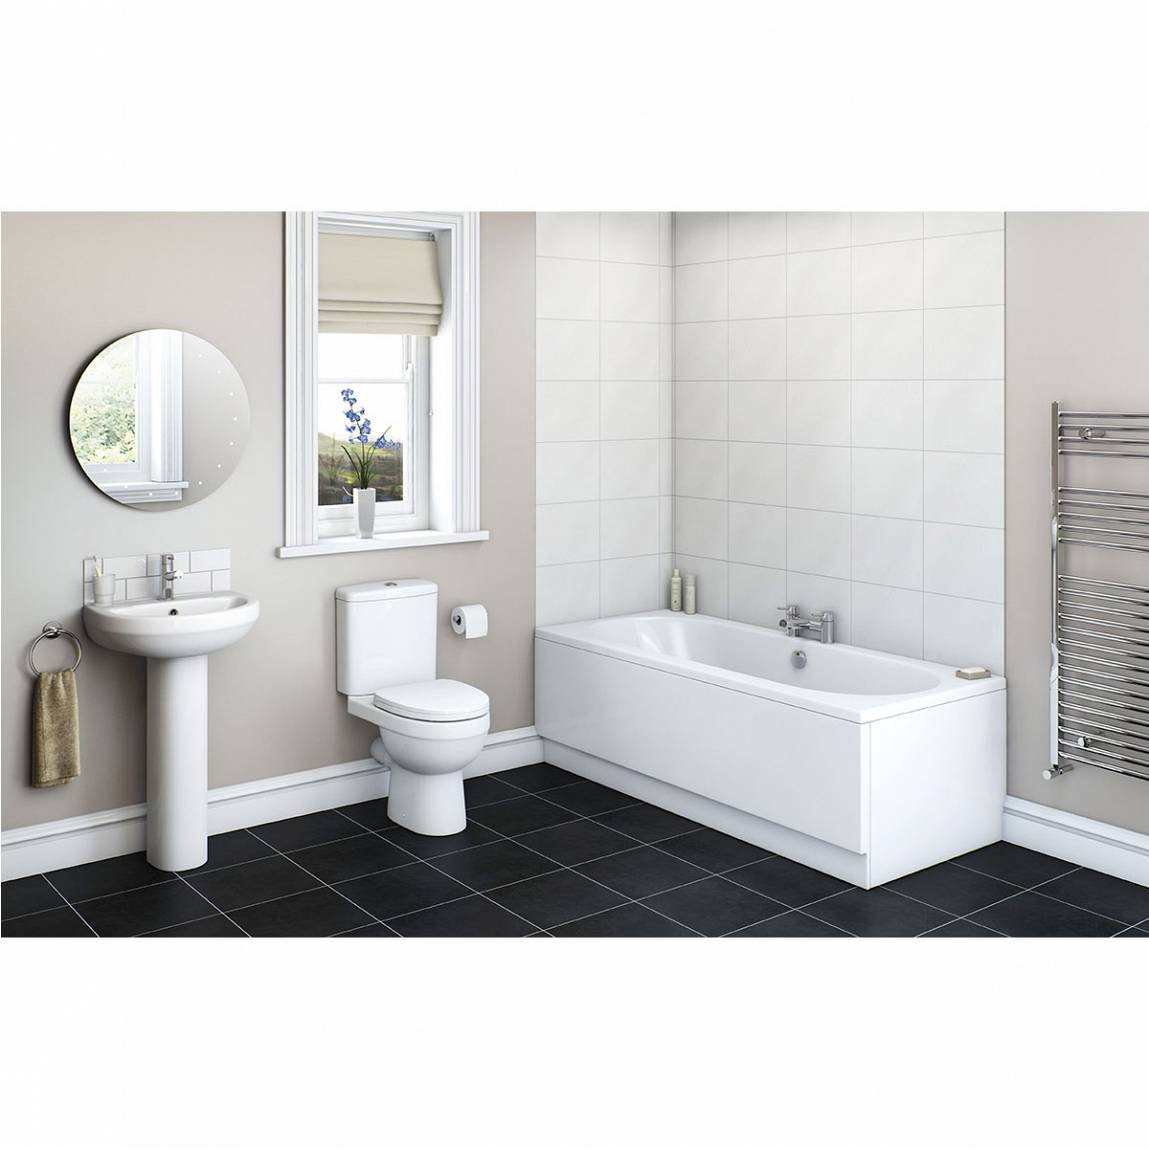 Image of Energy Bathroom Set with Islington 1700 x 750 Bath Suite